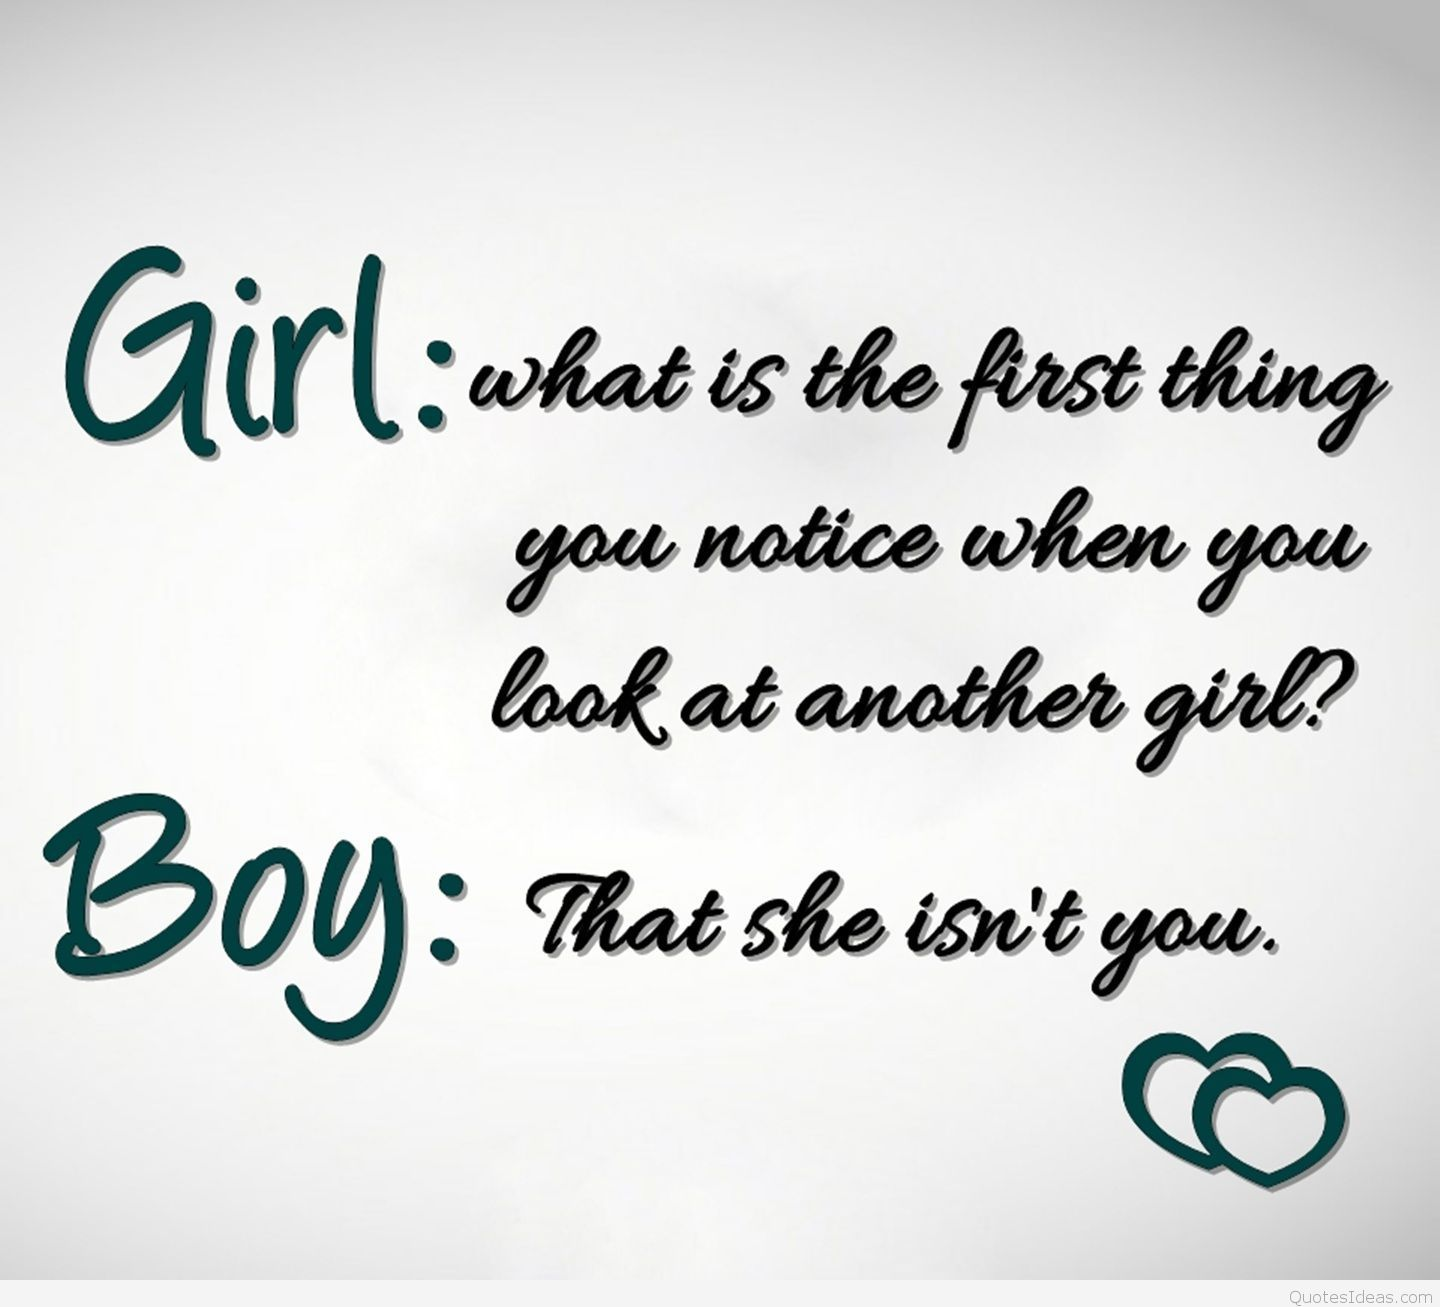 Cute Love Quotes Tumblr Wallpapers Top Free Cute Love Quotes Tumblr Backgrounds Wallpaperaccess